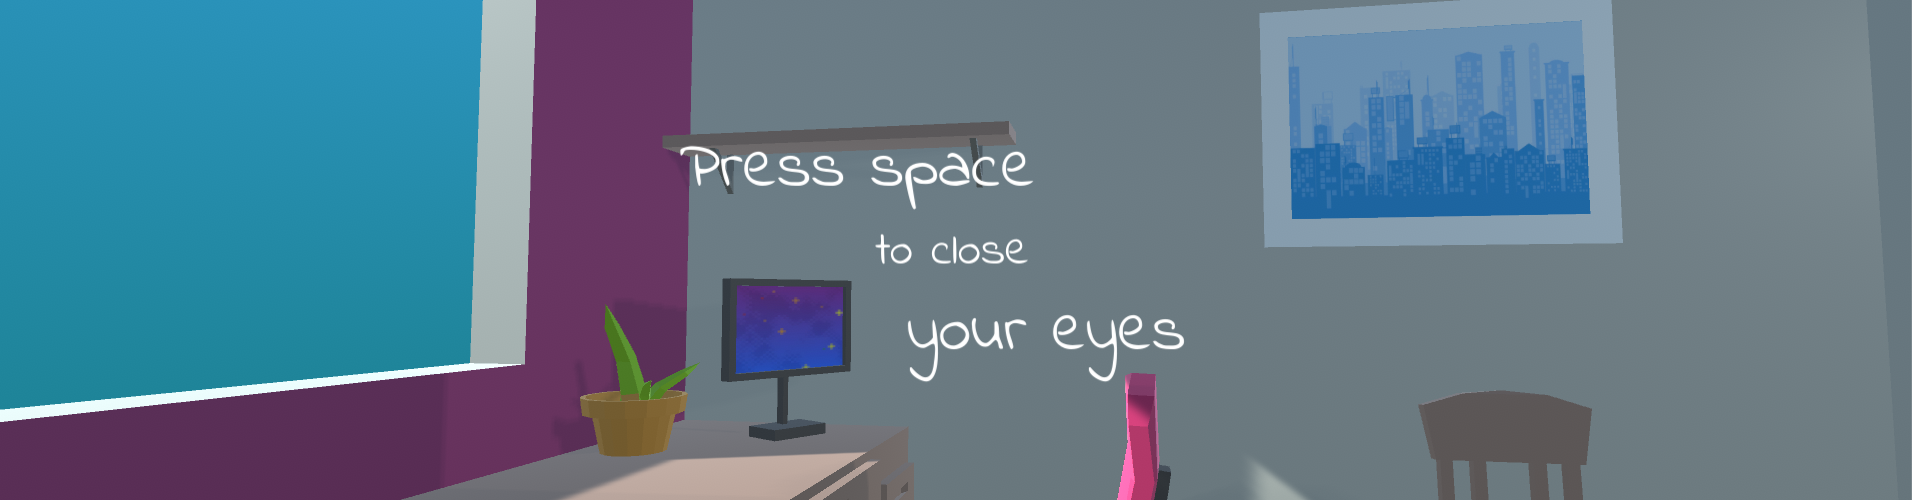 Press space to close your eyes.